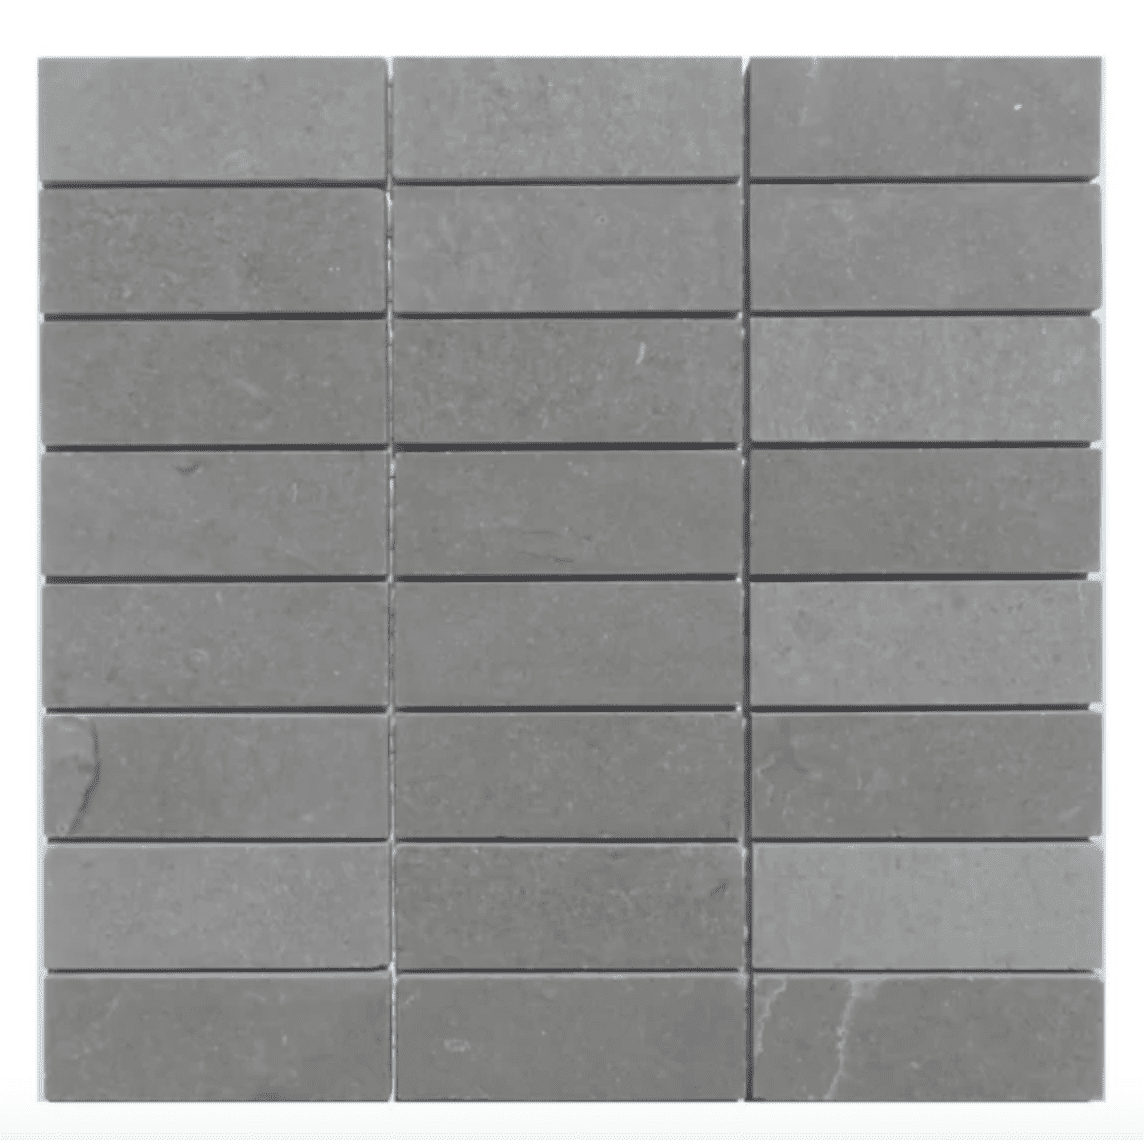 Stacked gray tile